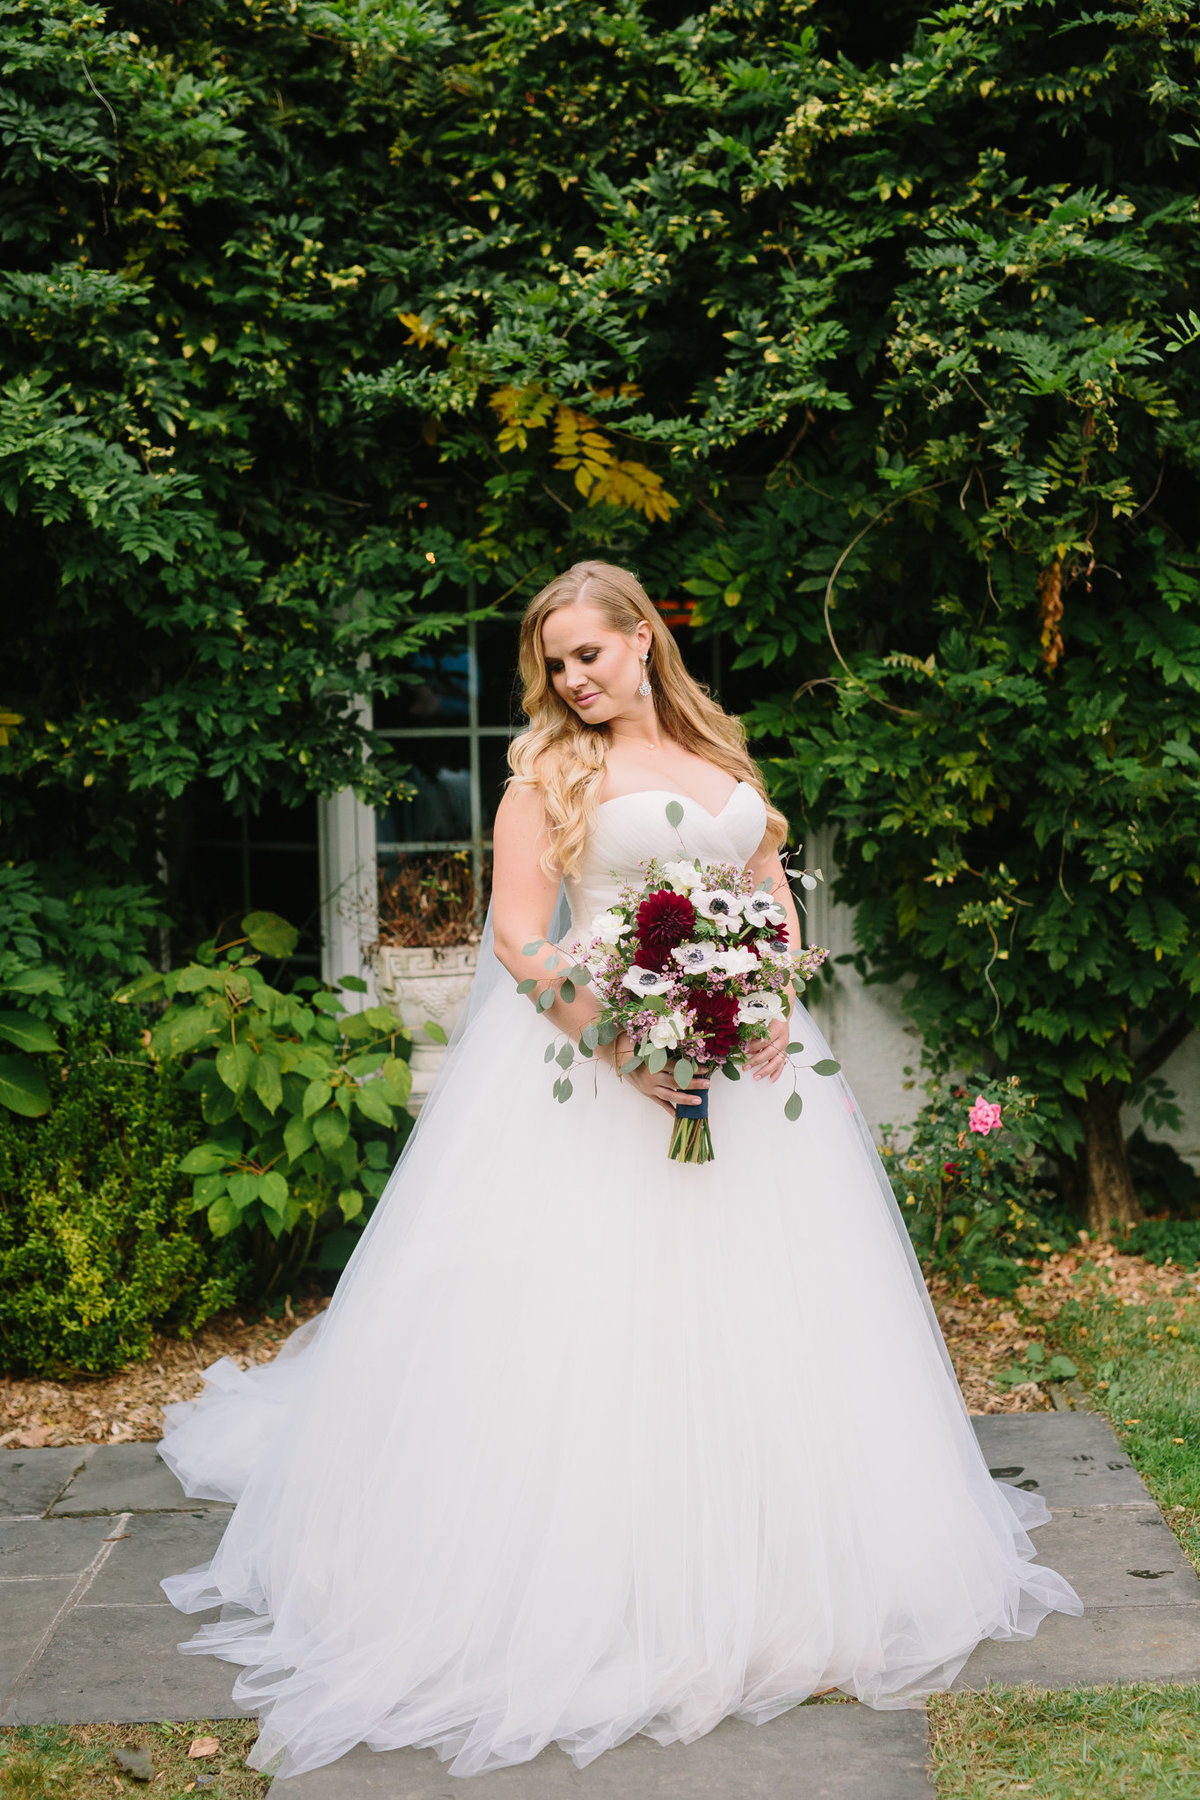 BHULLPHOTOGRAPHY_crabtreekittlehousewedding-24